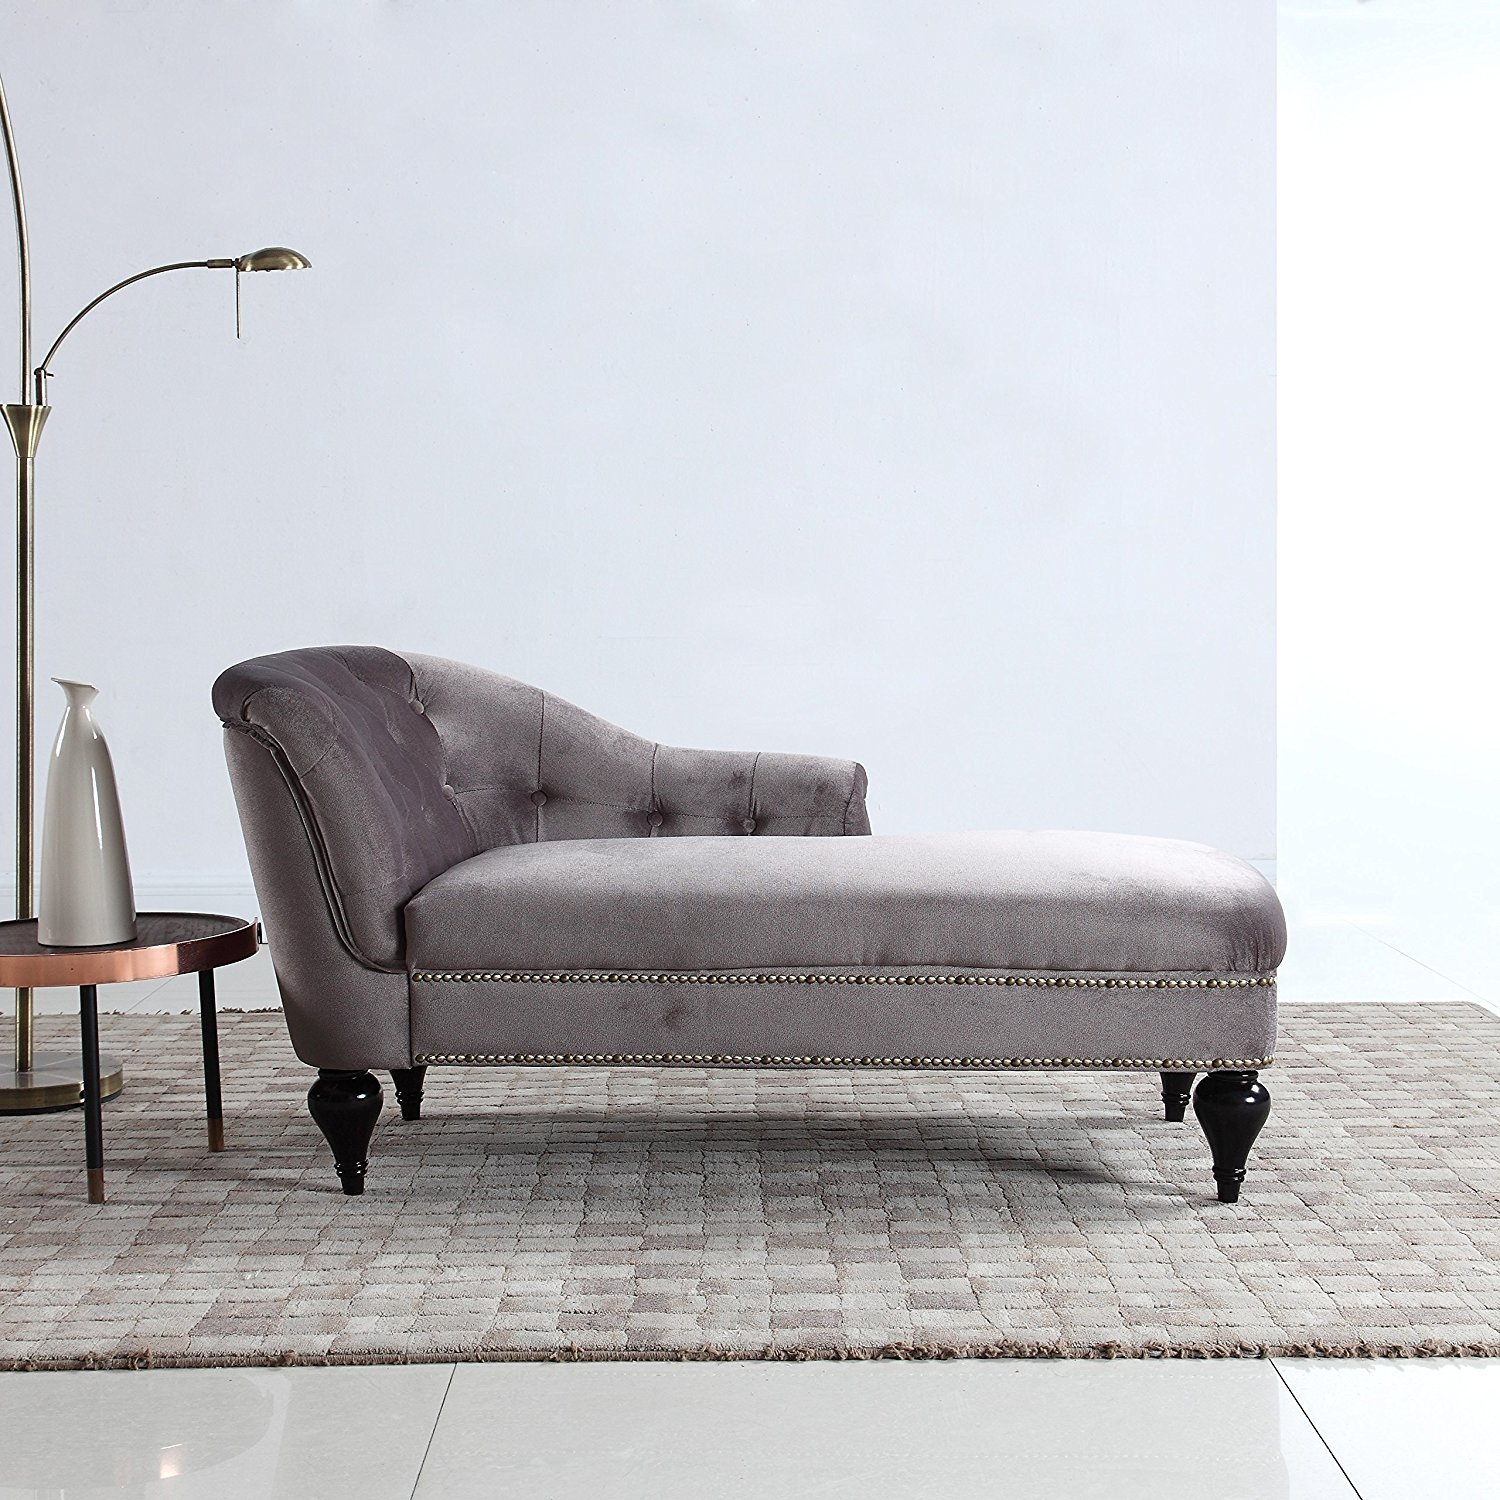 Details about Modern Small Space Velvet Chaise Lounge for Living Room or  Bedroom Light Grey